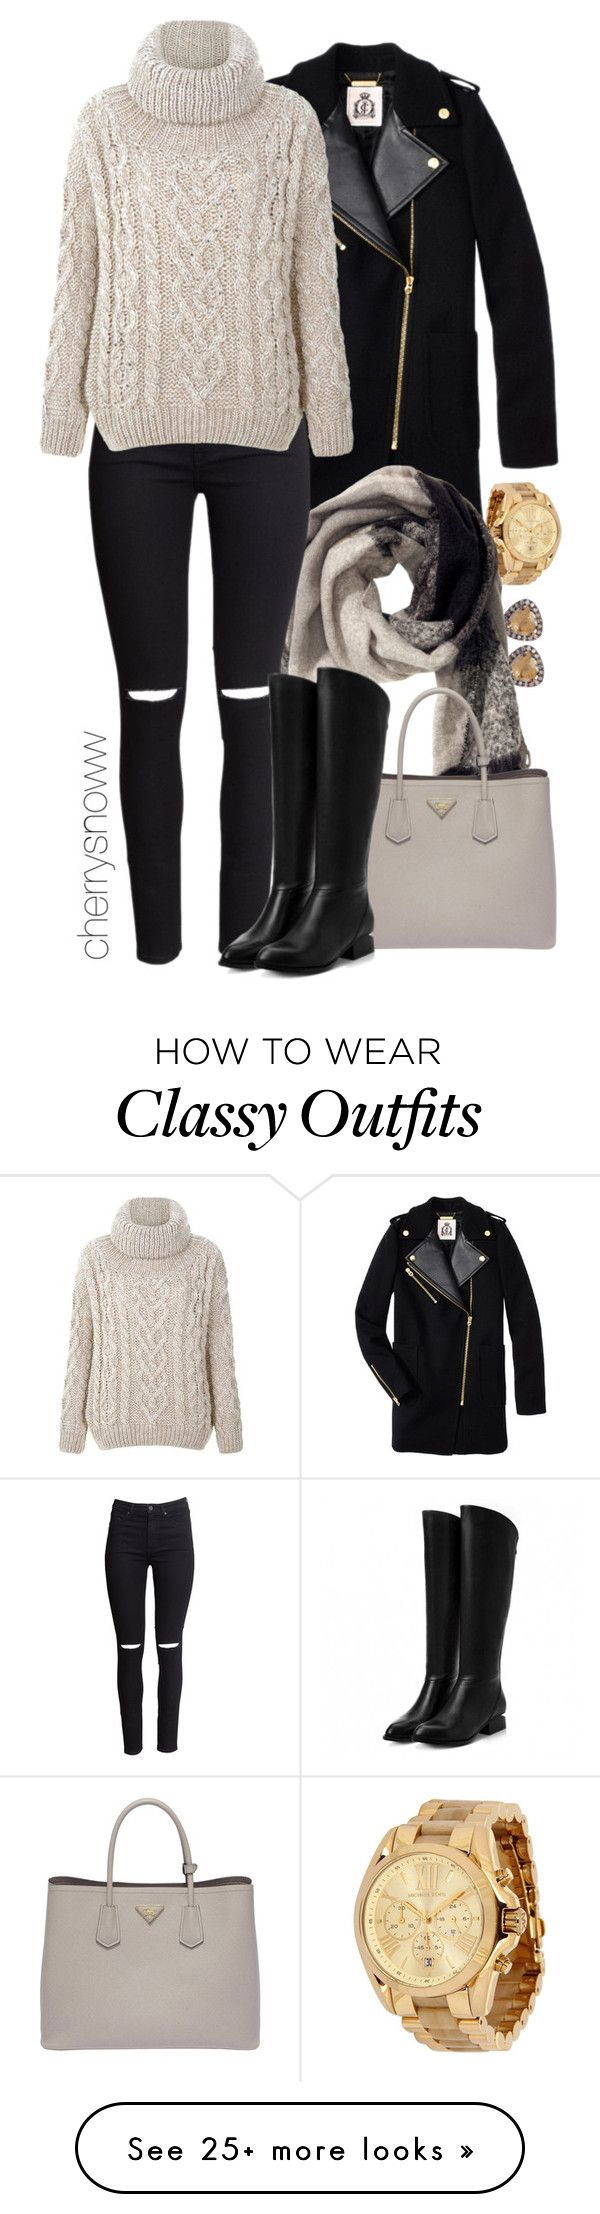 U0026quot;Classy edgy casual chic fall outfitu0026quot; by cherrysnoww on Polyvore featuring moda Juicy Couture ...